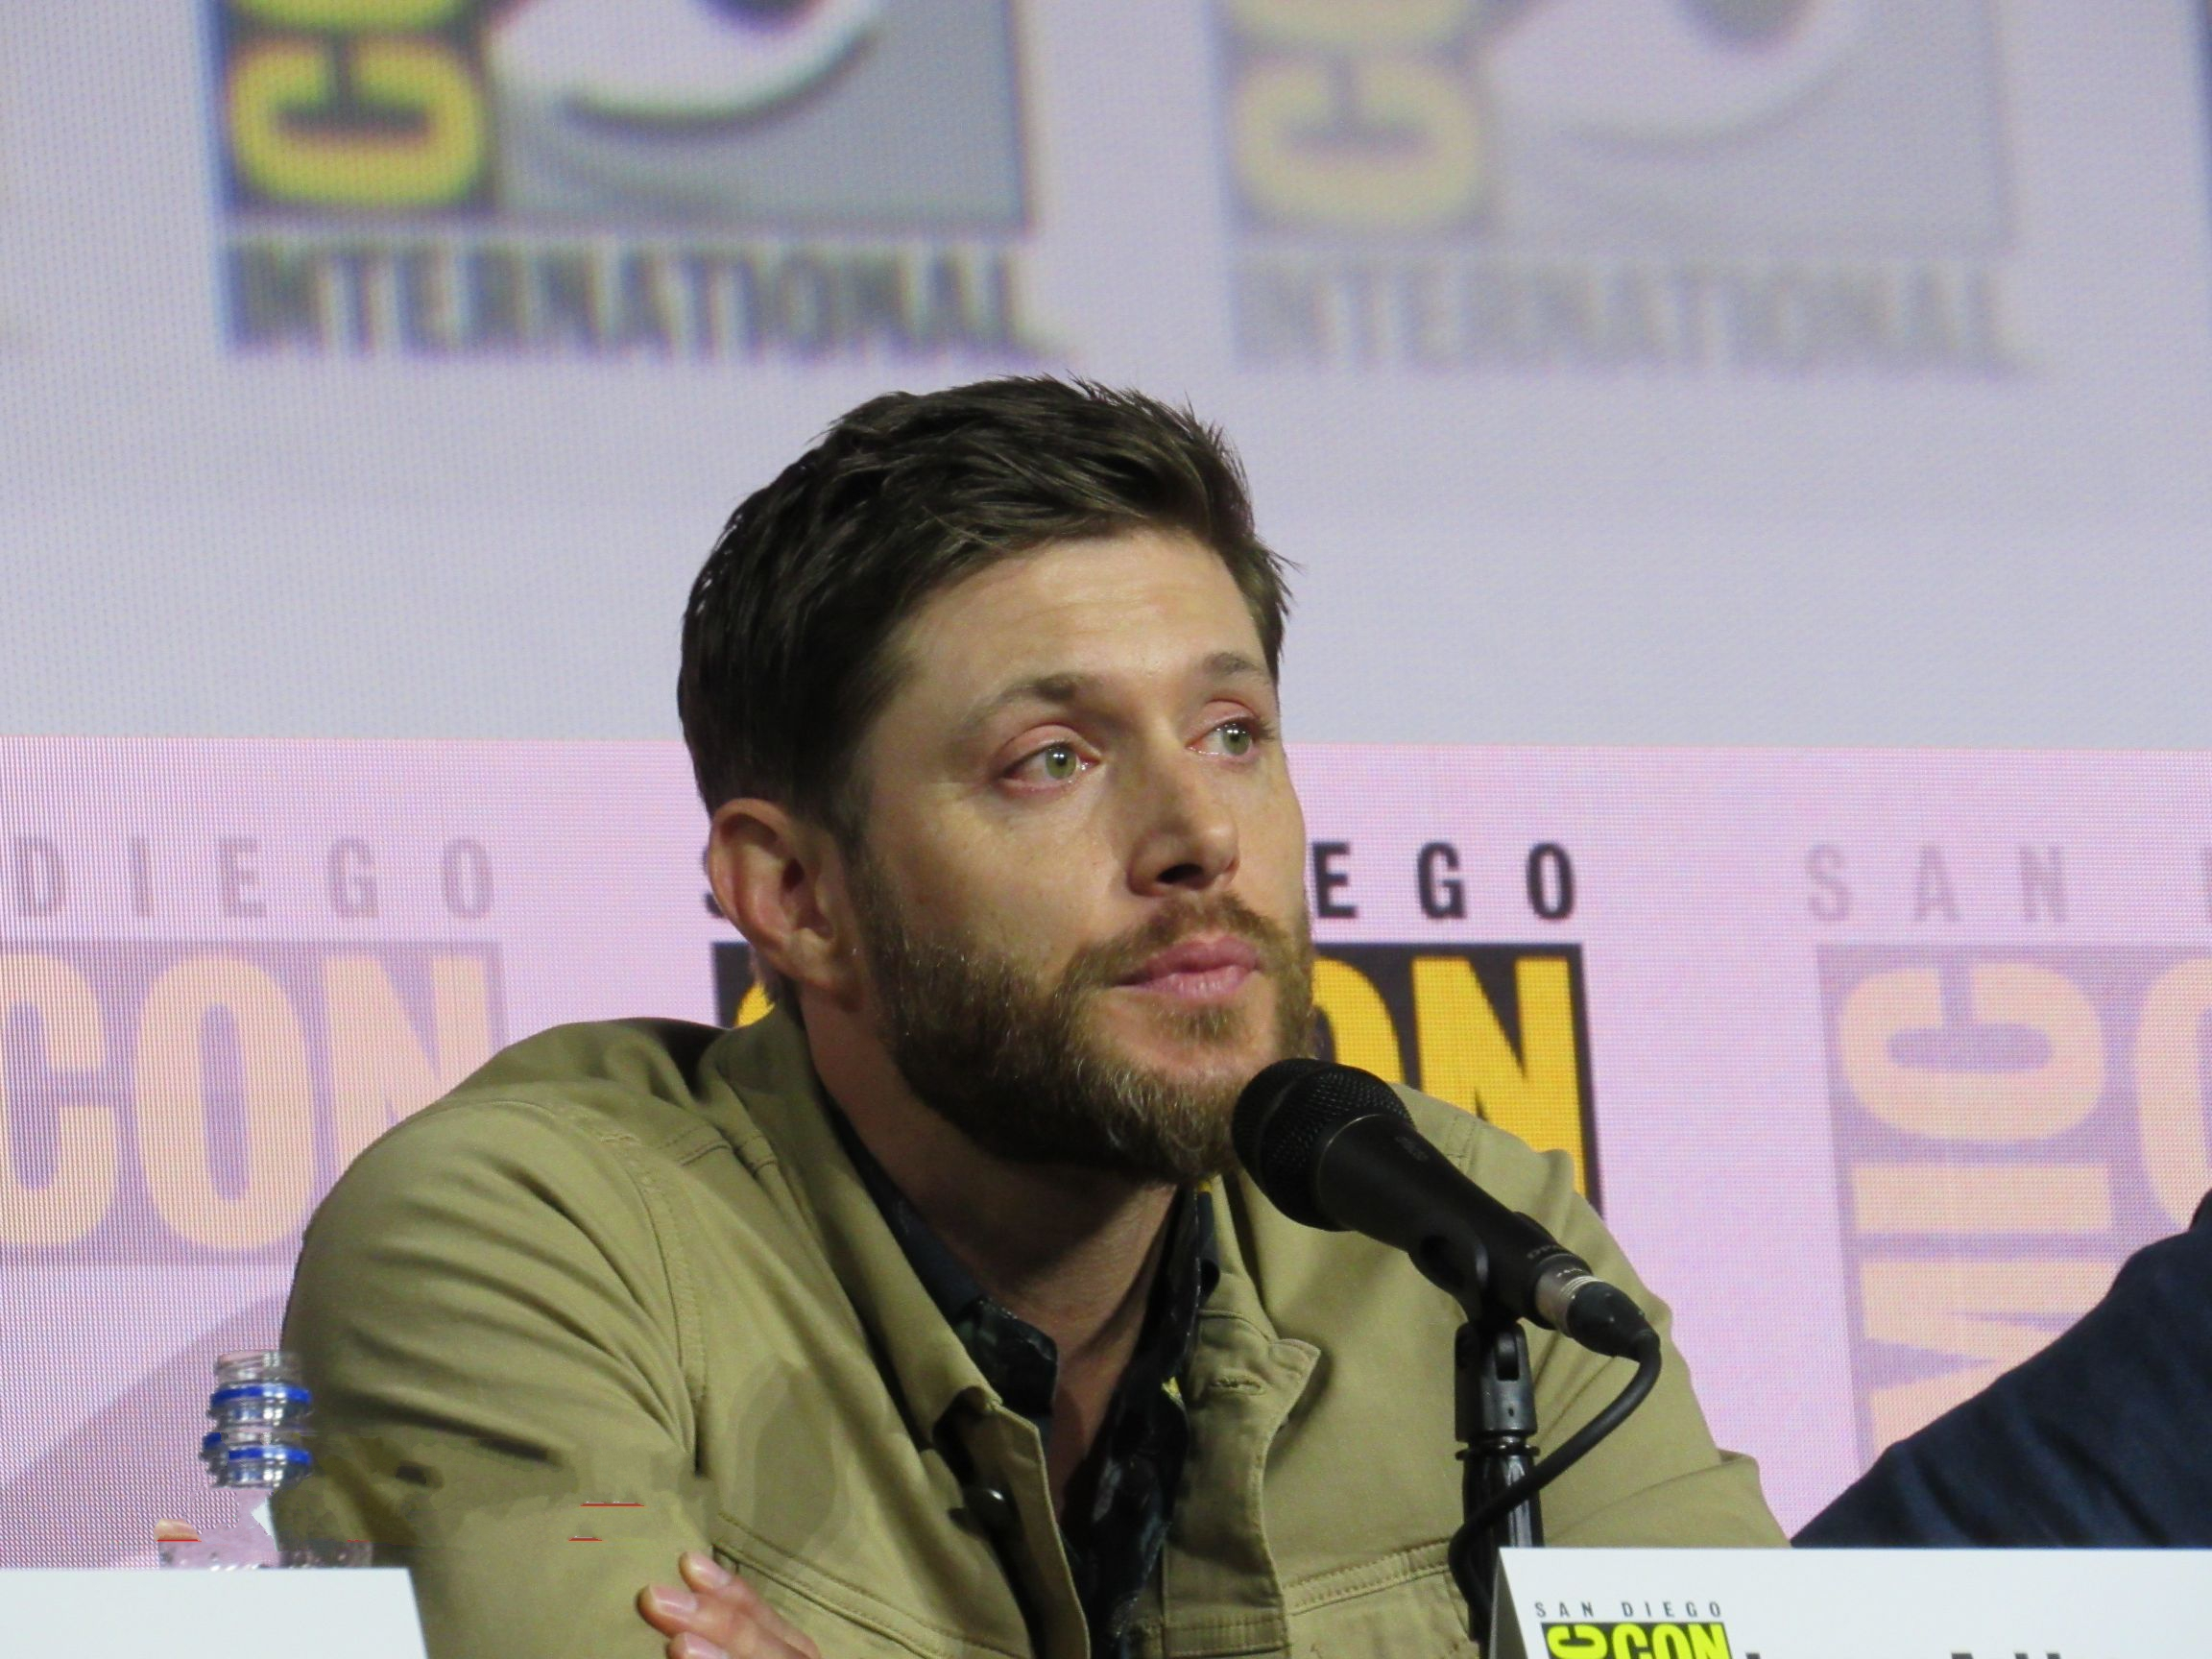 Jensen Ackles emotional at Supernatural final comic con panel 2019